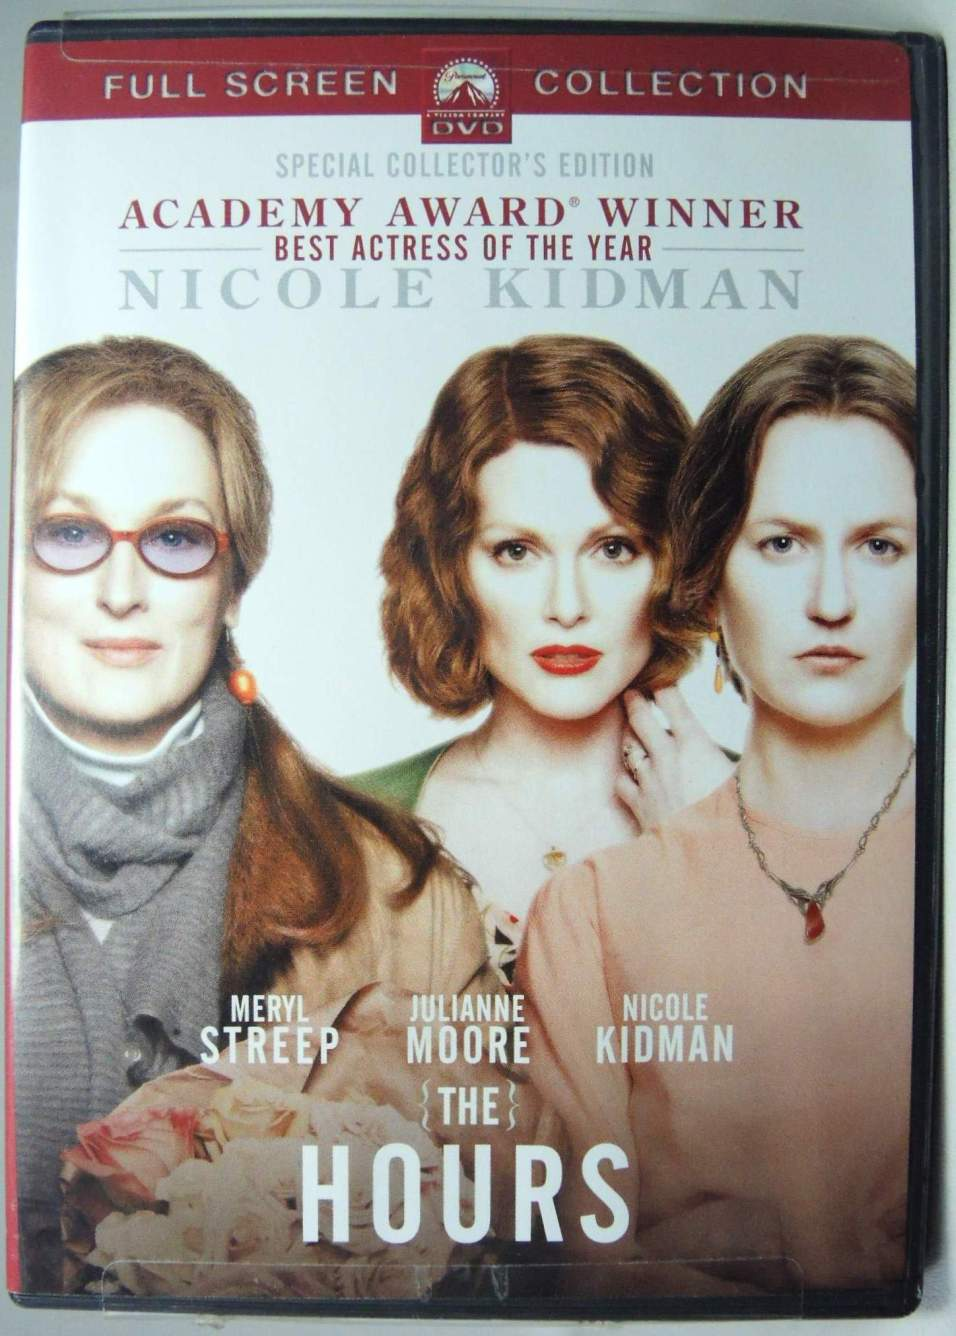 The Hours - Full Screen DVD - 7870-7858CCCVCH